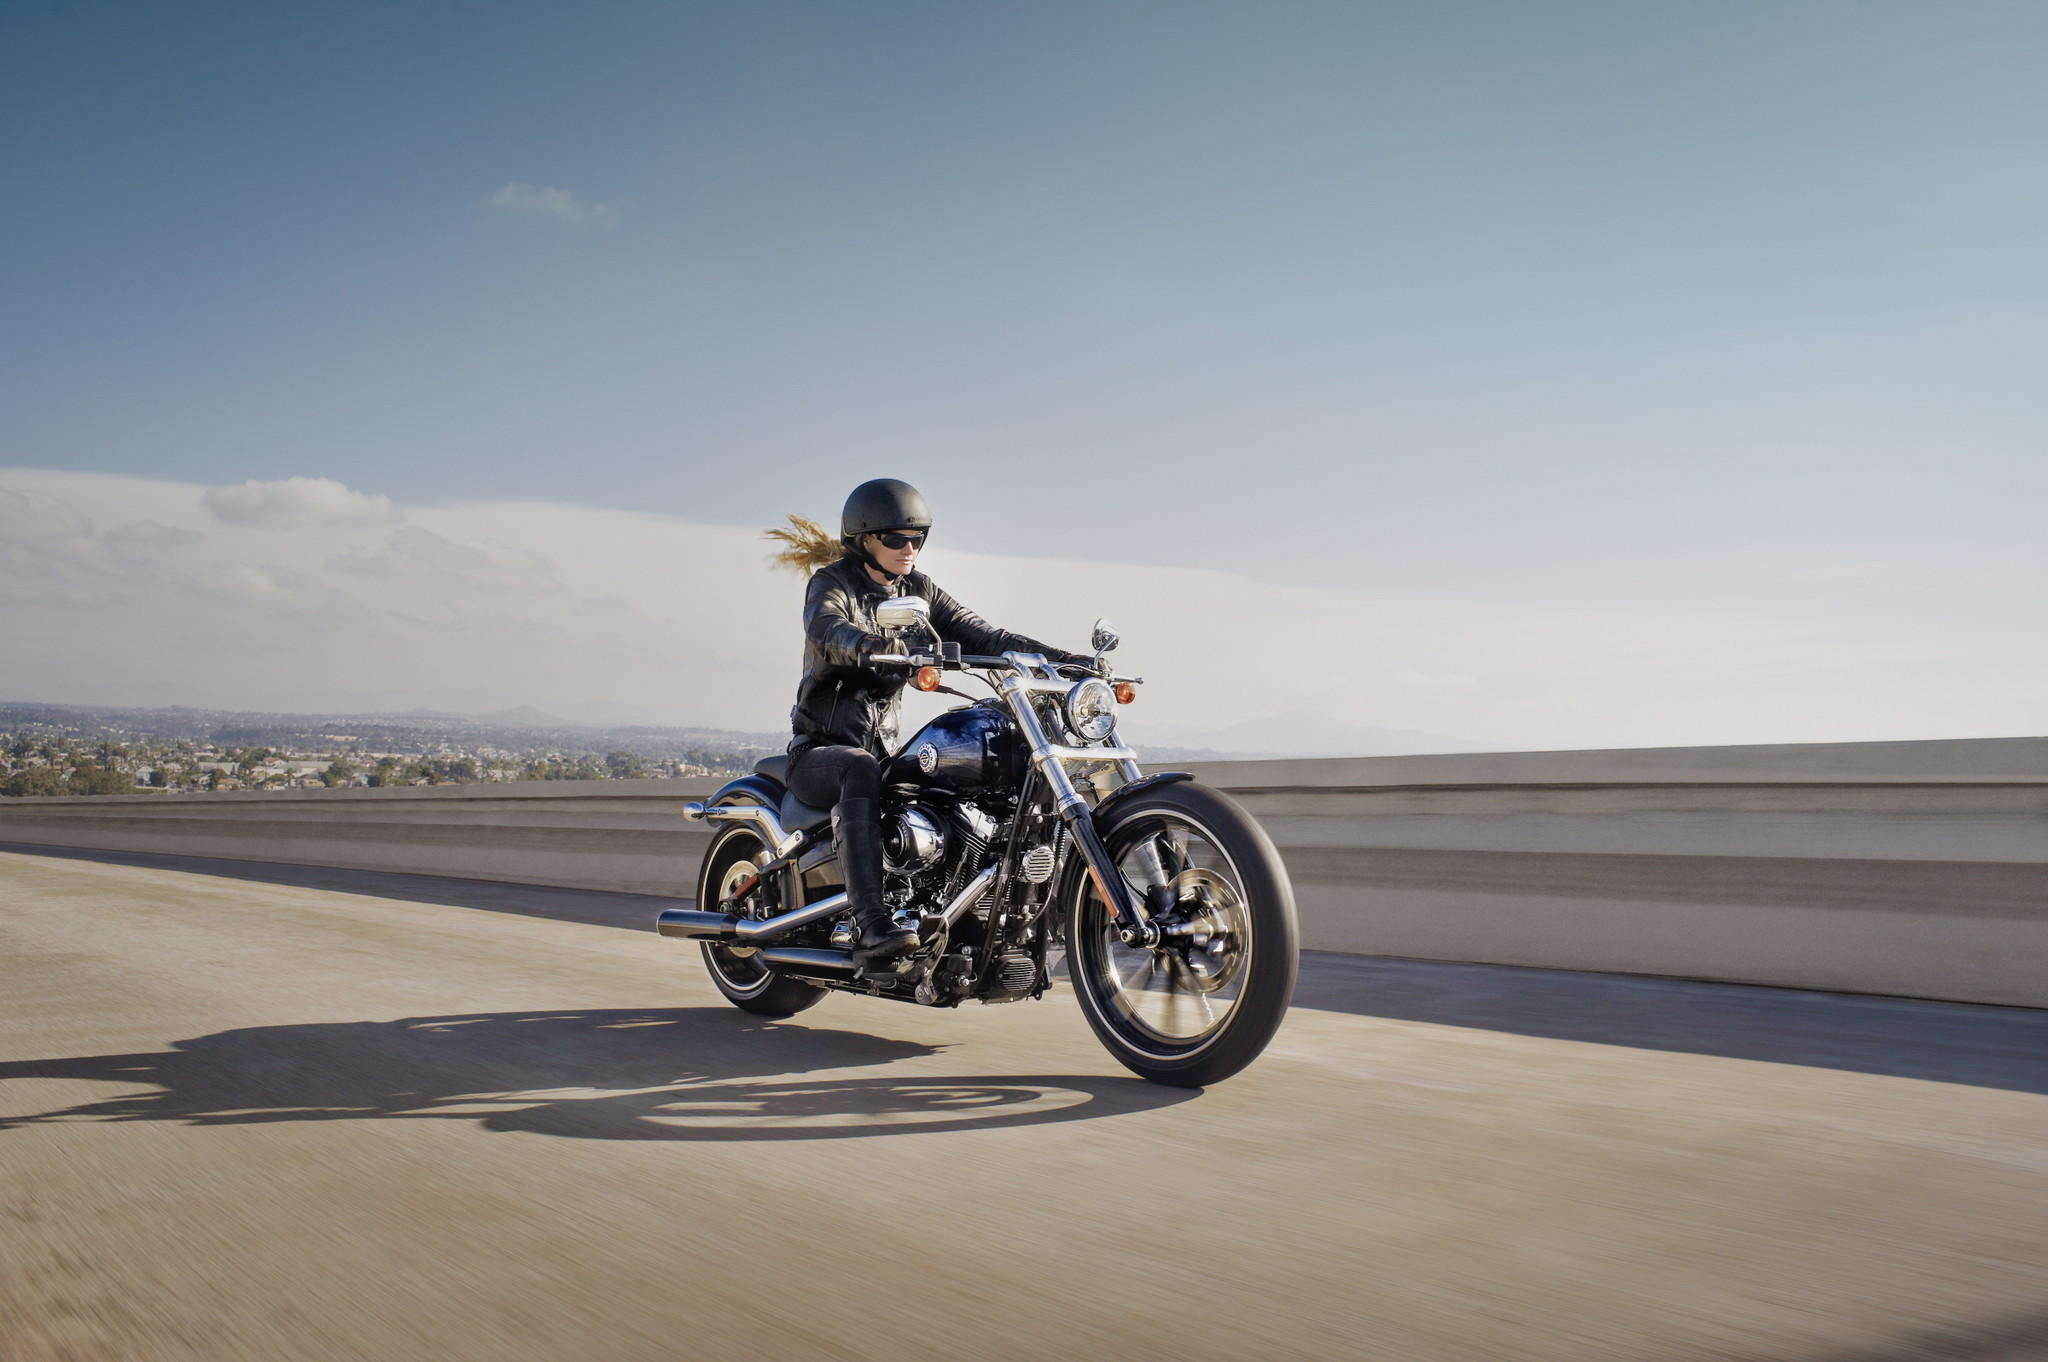 harley davidson posse ride essay Posse ride is the main instrument to connect company to the customers and to build the product's brand concept we will write a custom essay sample on building a brand community on the harley posse ride specifically for you.